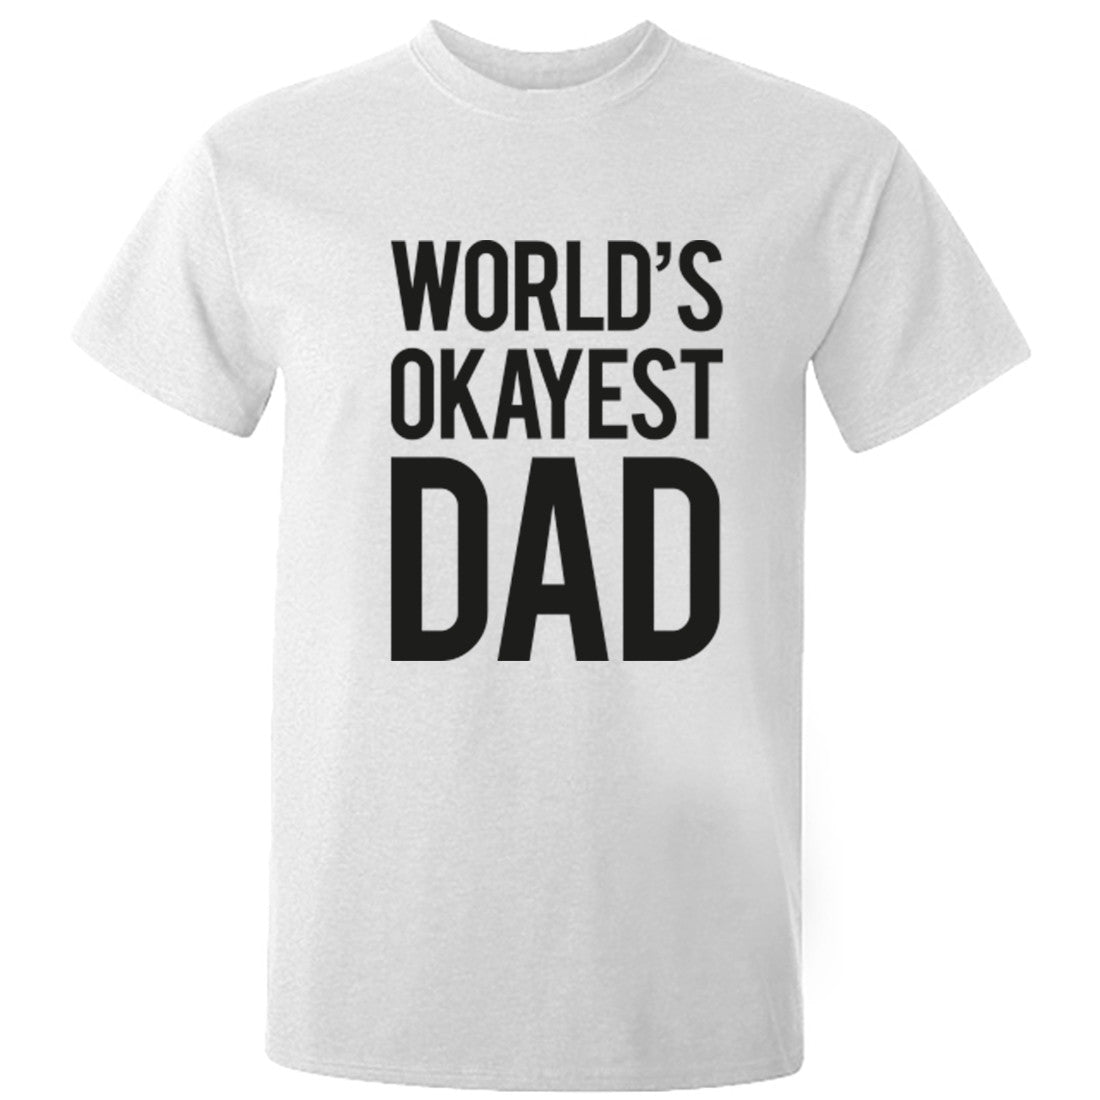 World's Okayest Dad unisex t-shirt K0235